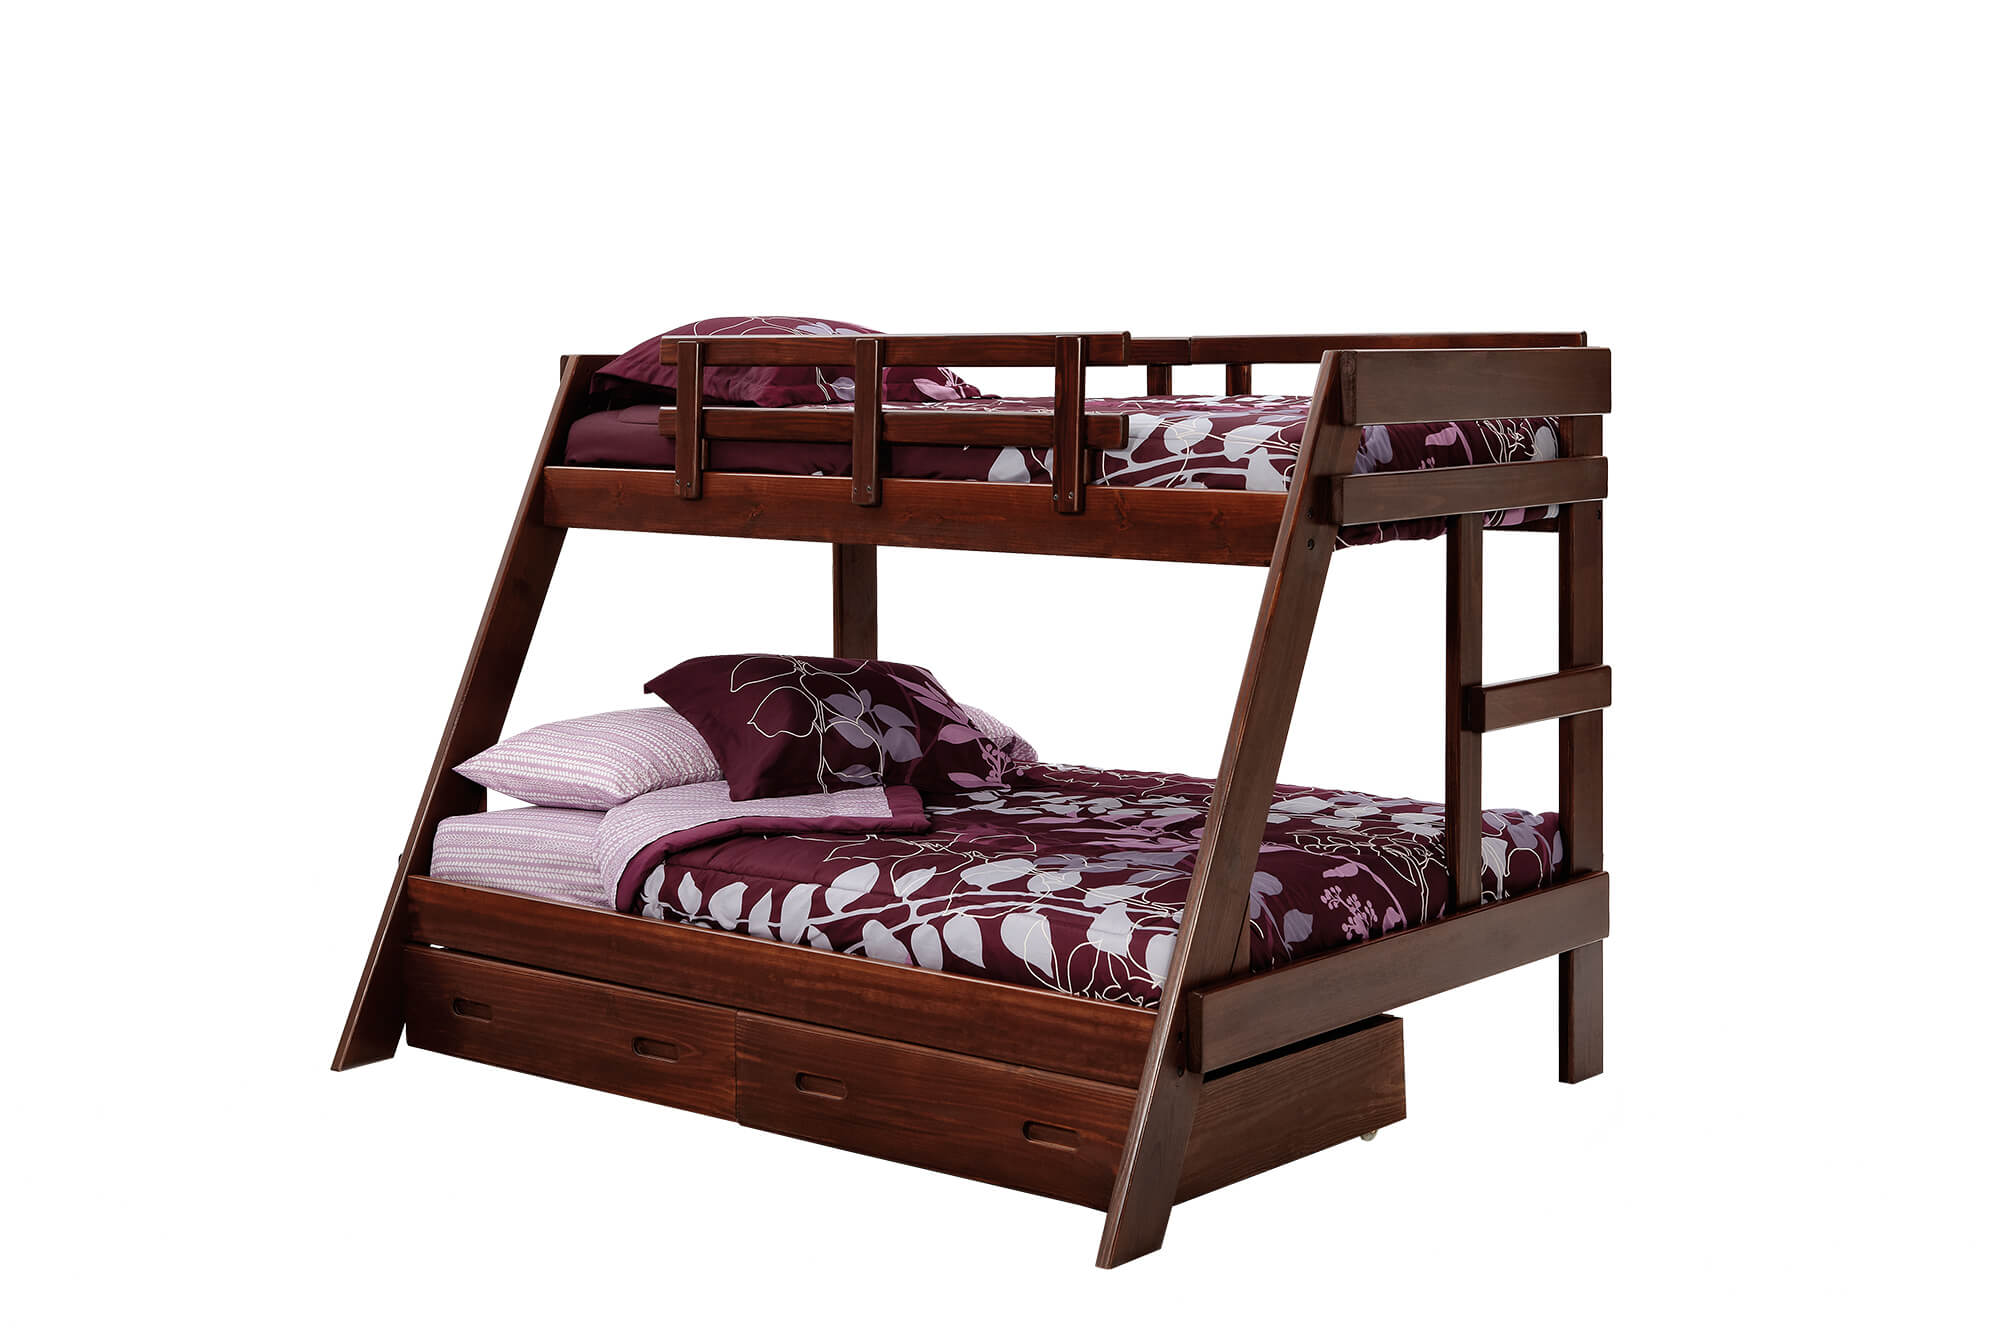 Woodcrest Rustic Brown Twin Full Bunk Bed Kids Bunk Beds